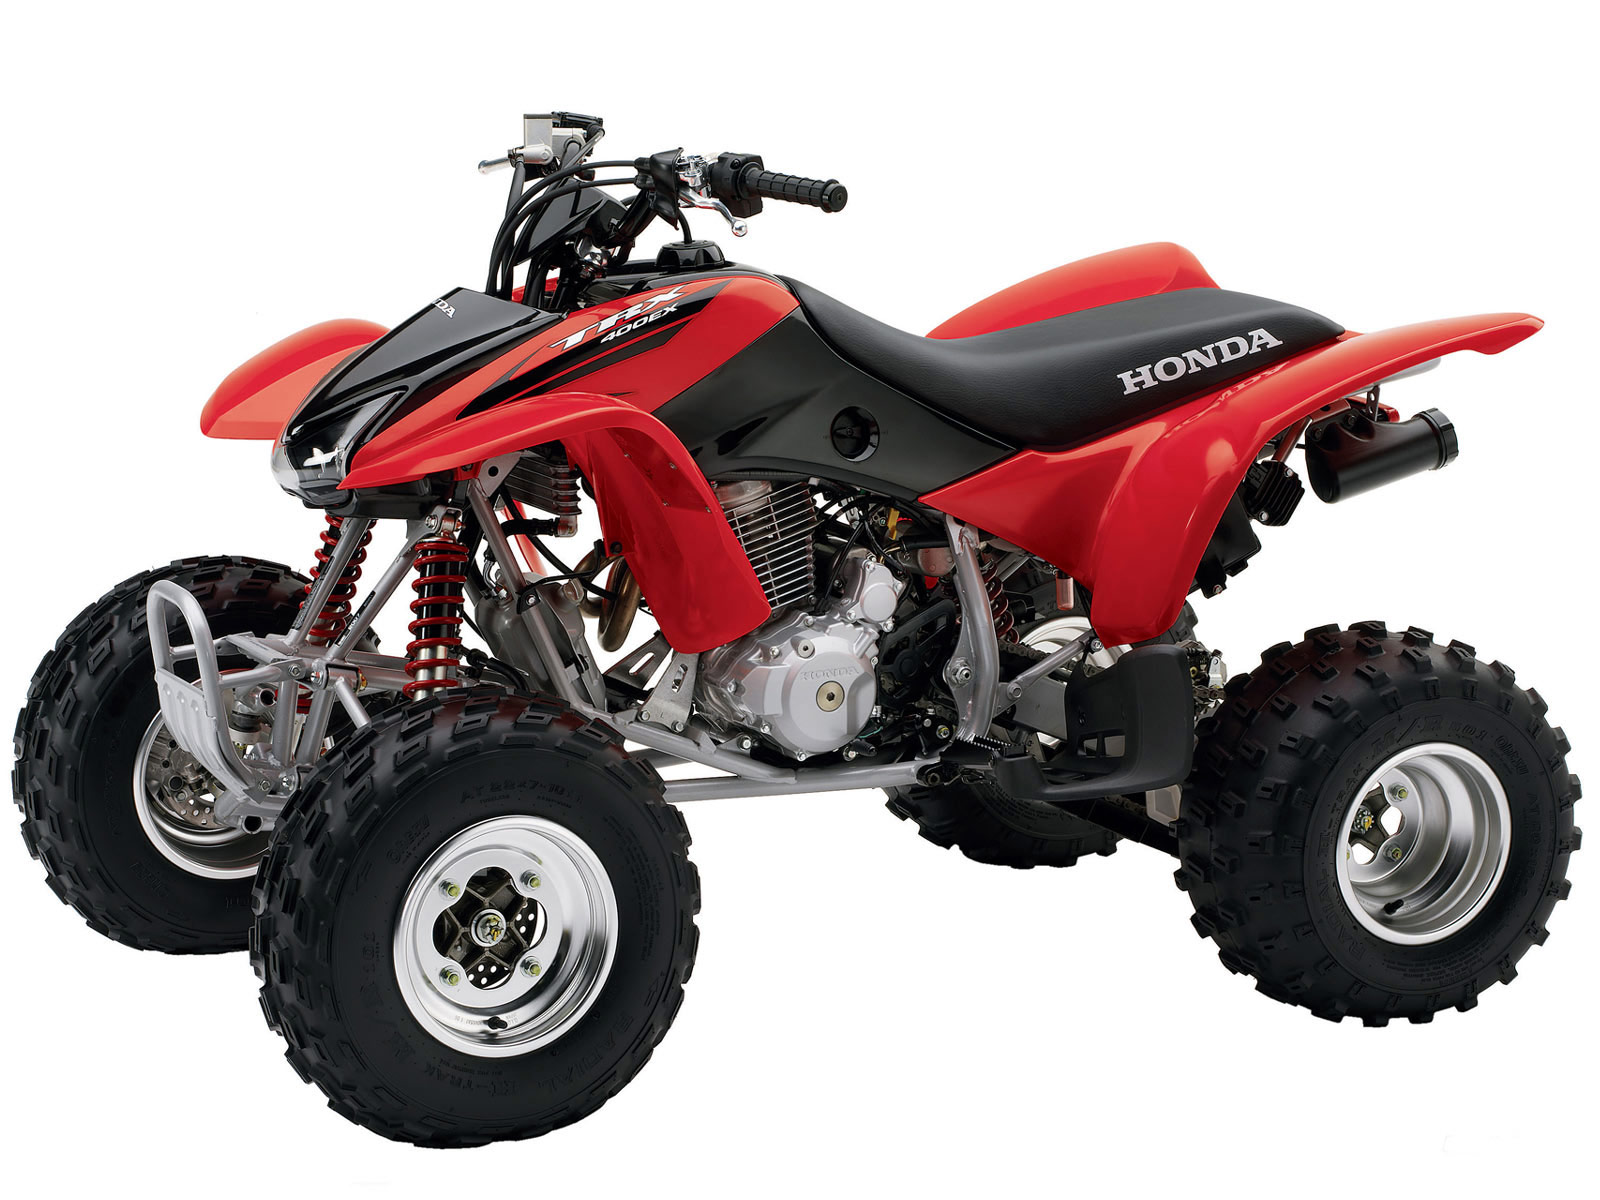 honda atv pictures 2007trx400ex accident lawyers info. Black Bedroom Furniture Sets. Home Design Ideas